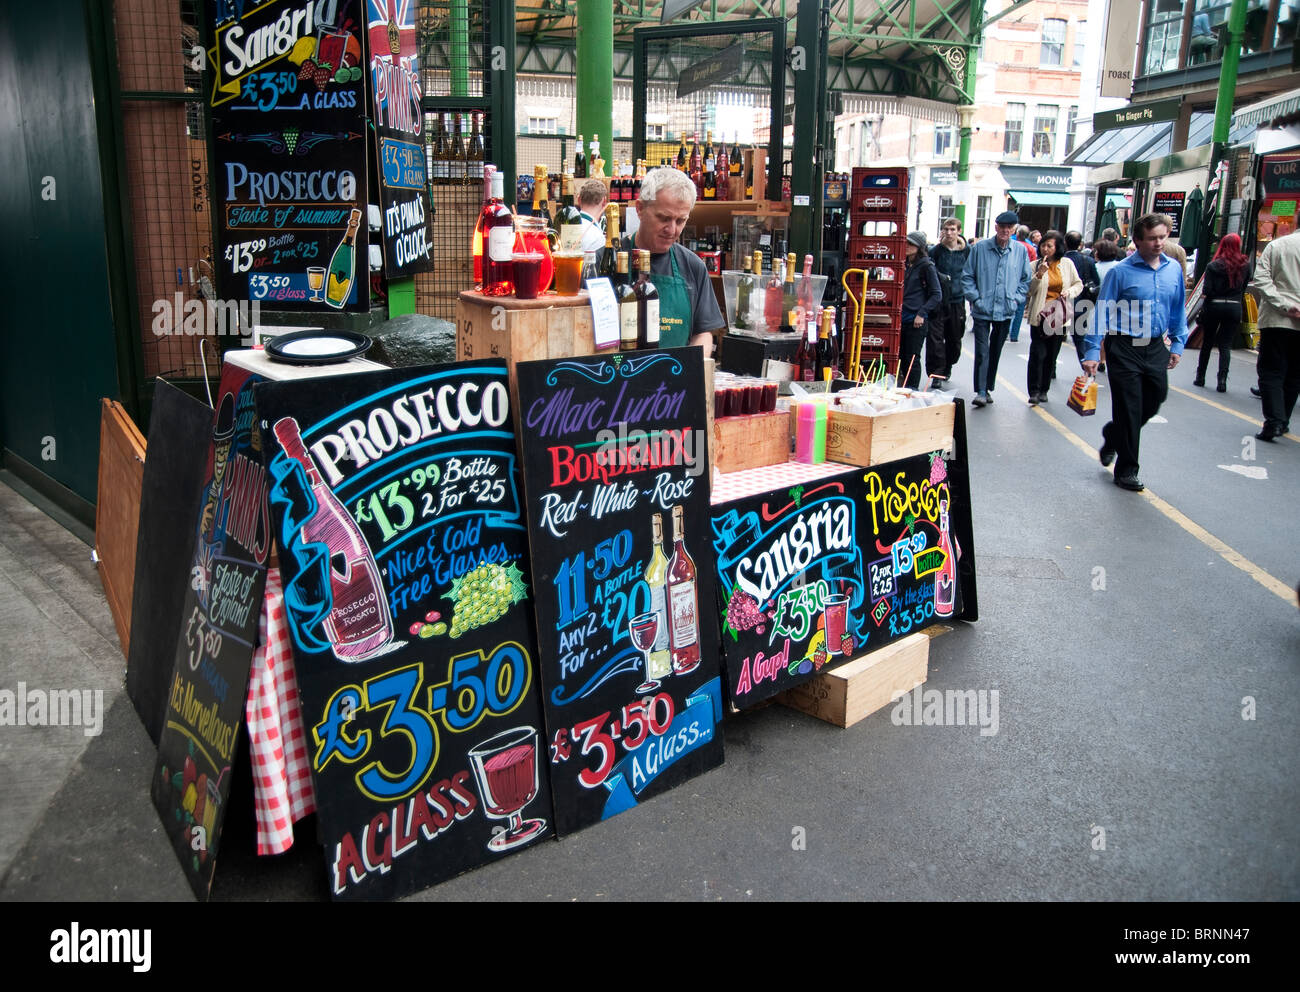 Wine stand, Borough Market, London, UK - Stock Image